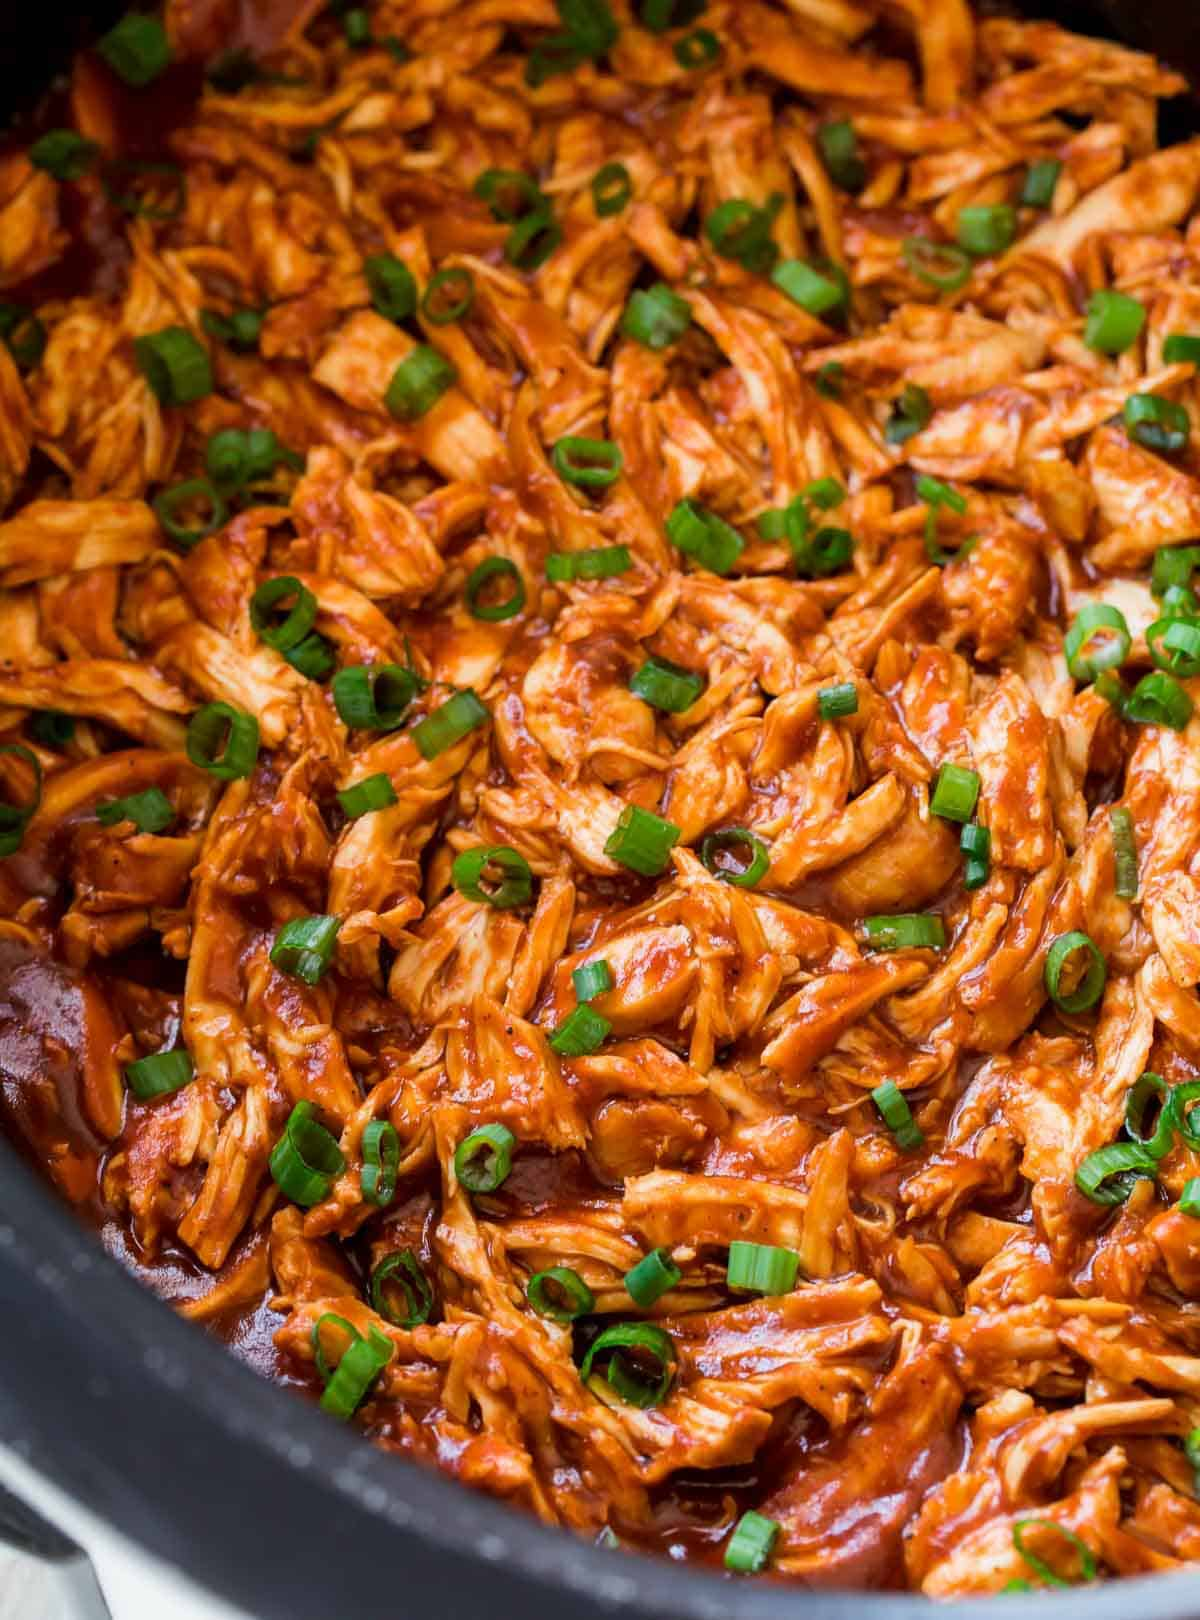 Shredded chicken in a slow cooker with bbq sauce and green onions